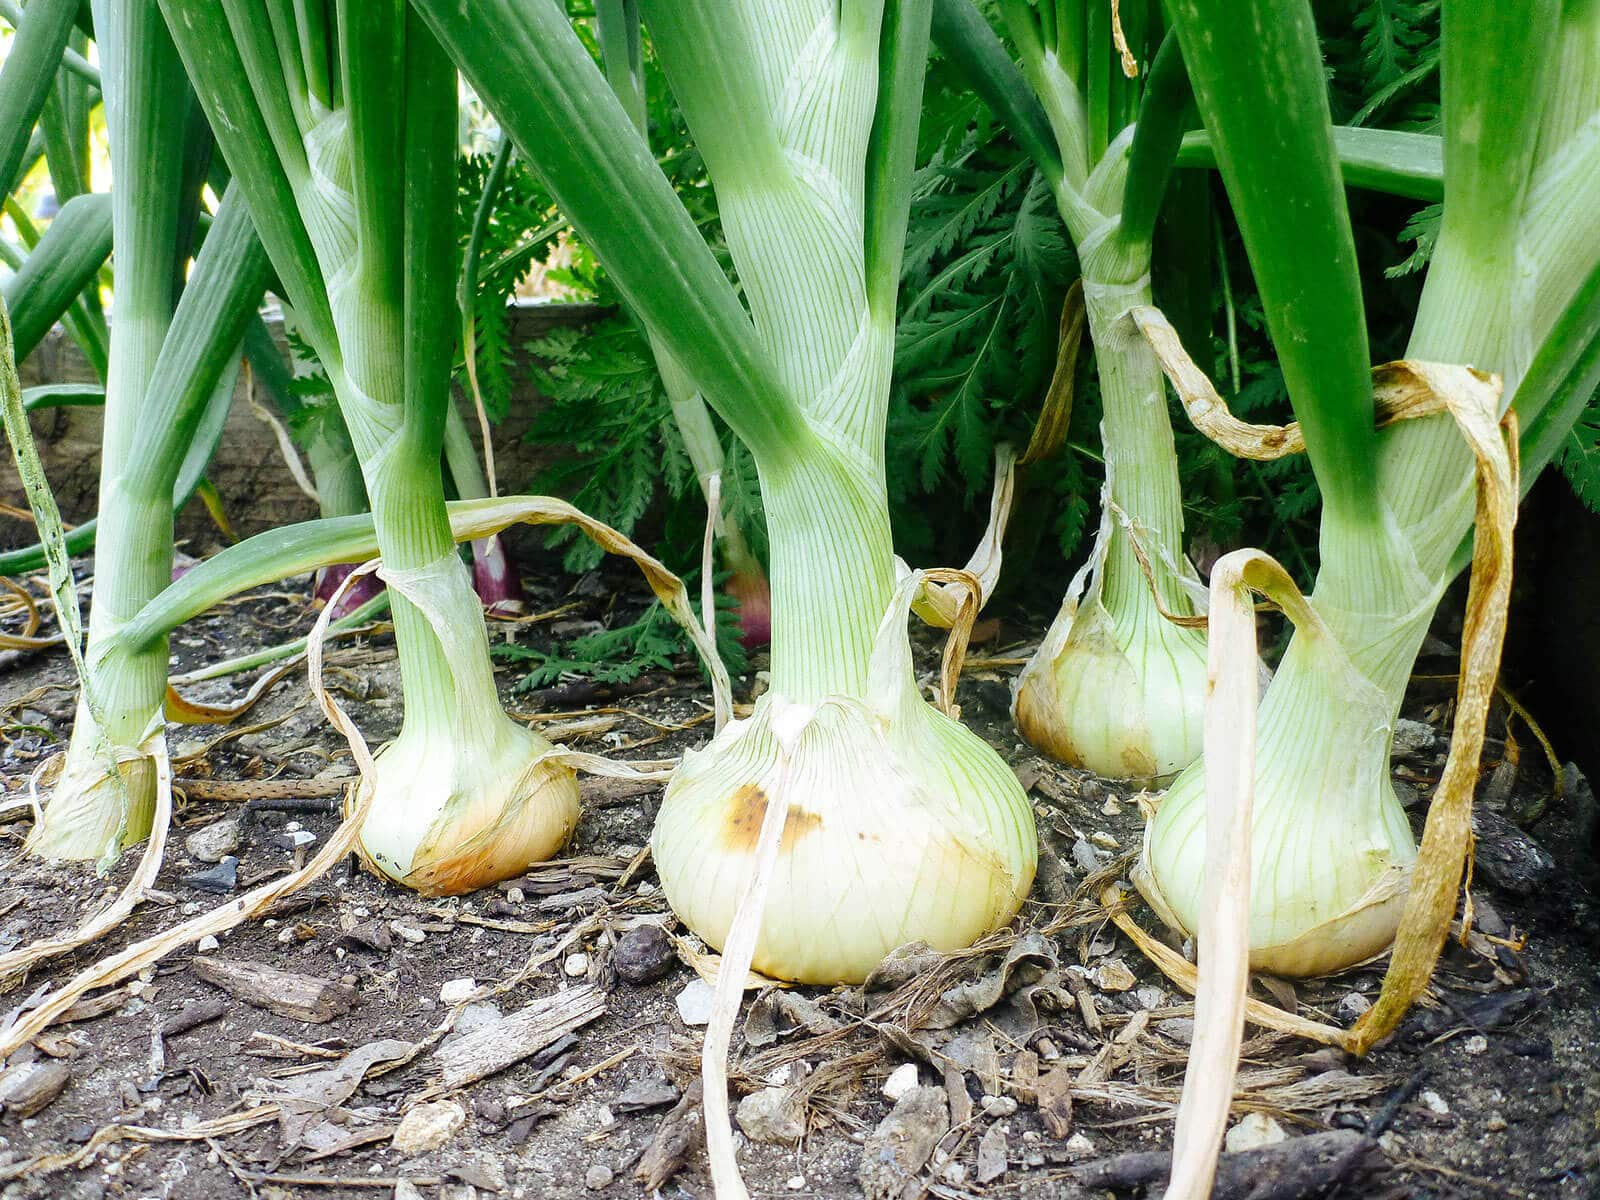 Mature onion plants with bulbs protruding from the soil